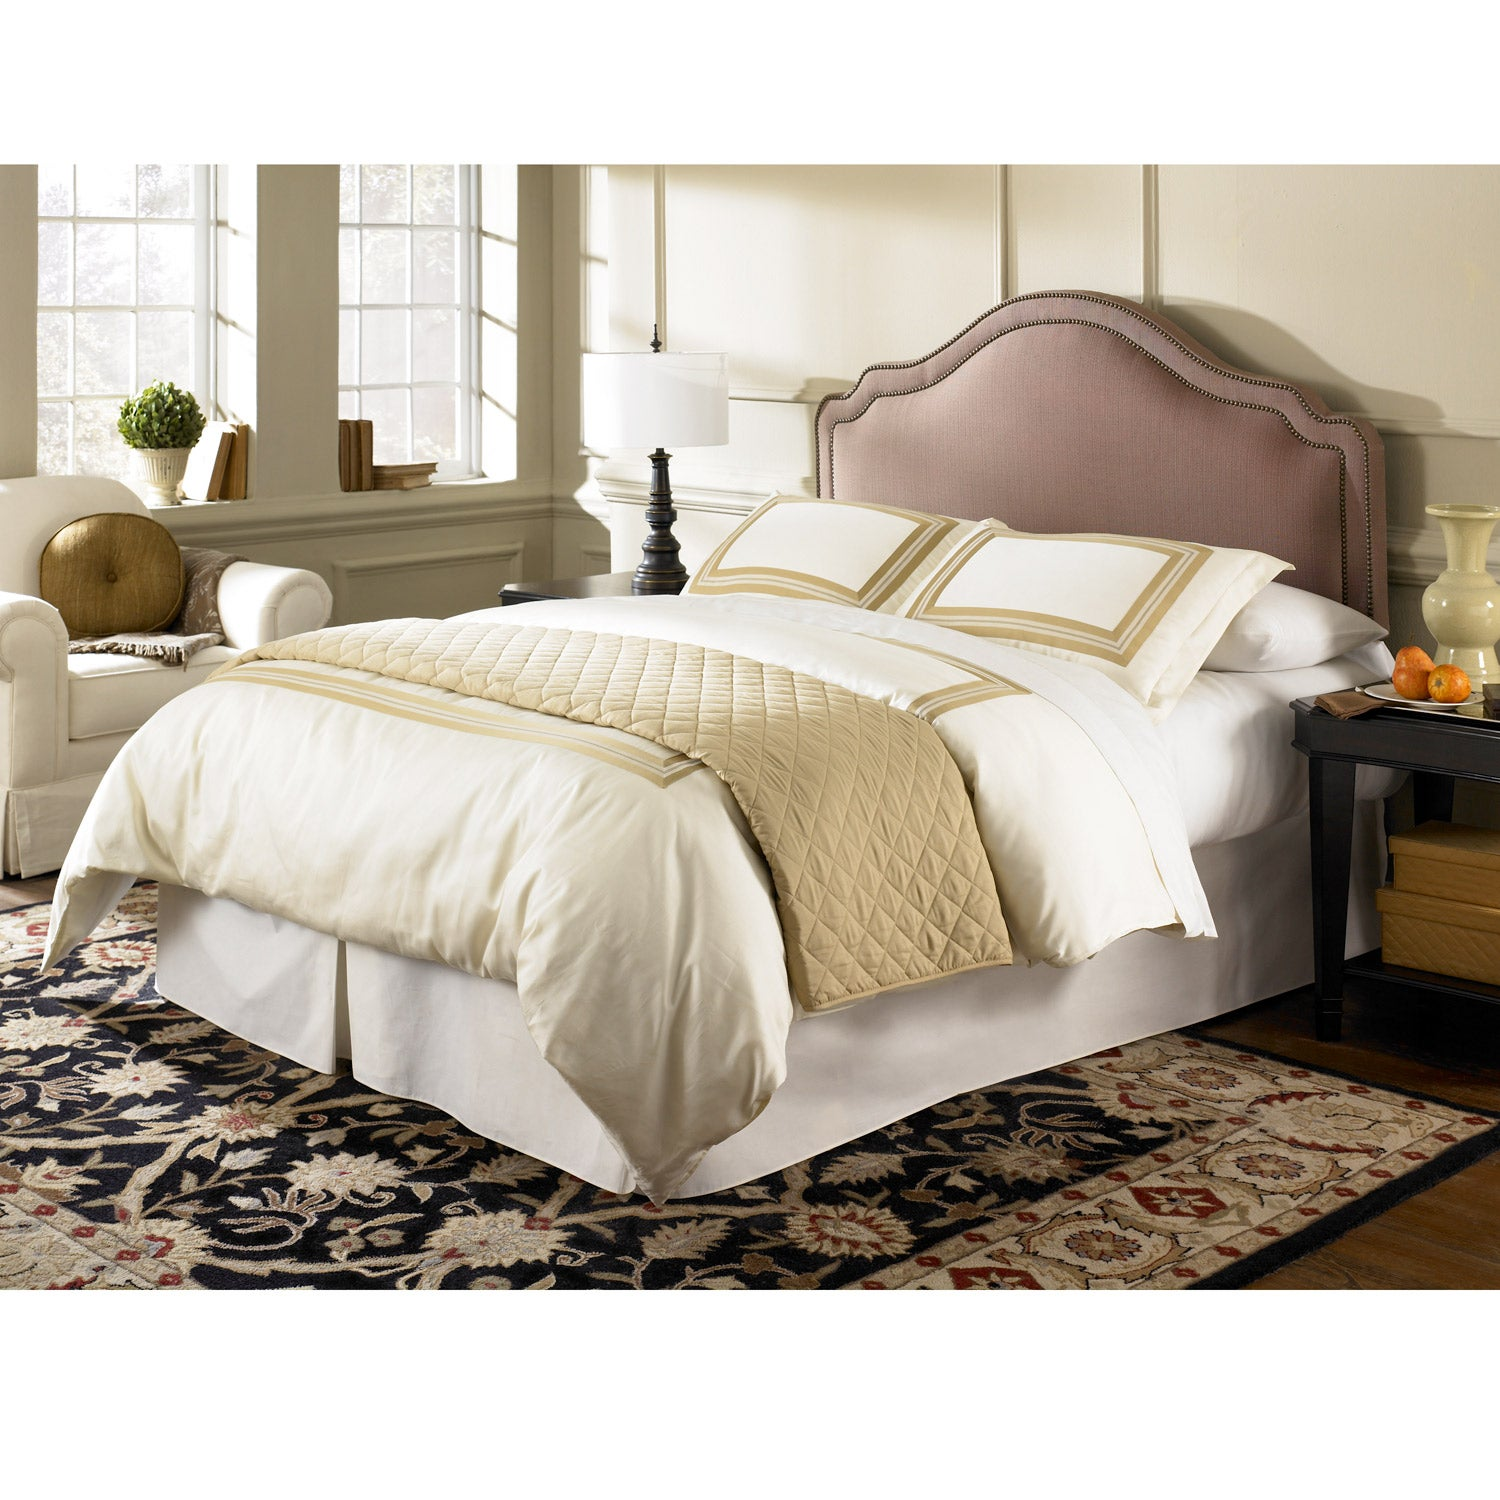 Fashion Bed Saint Marie King/Cal King Upholstered Headboard